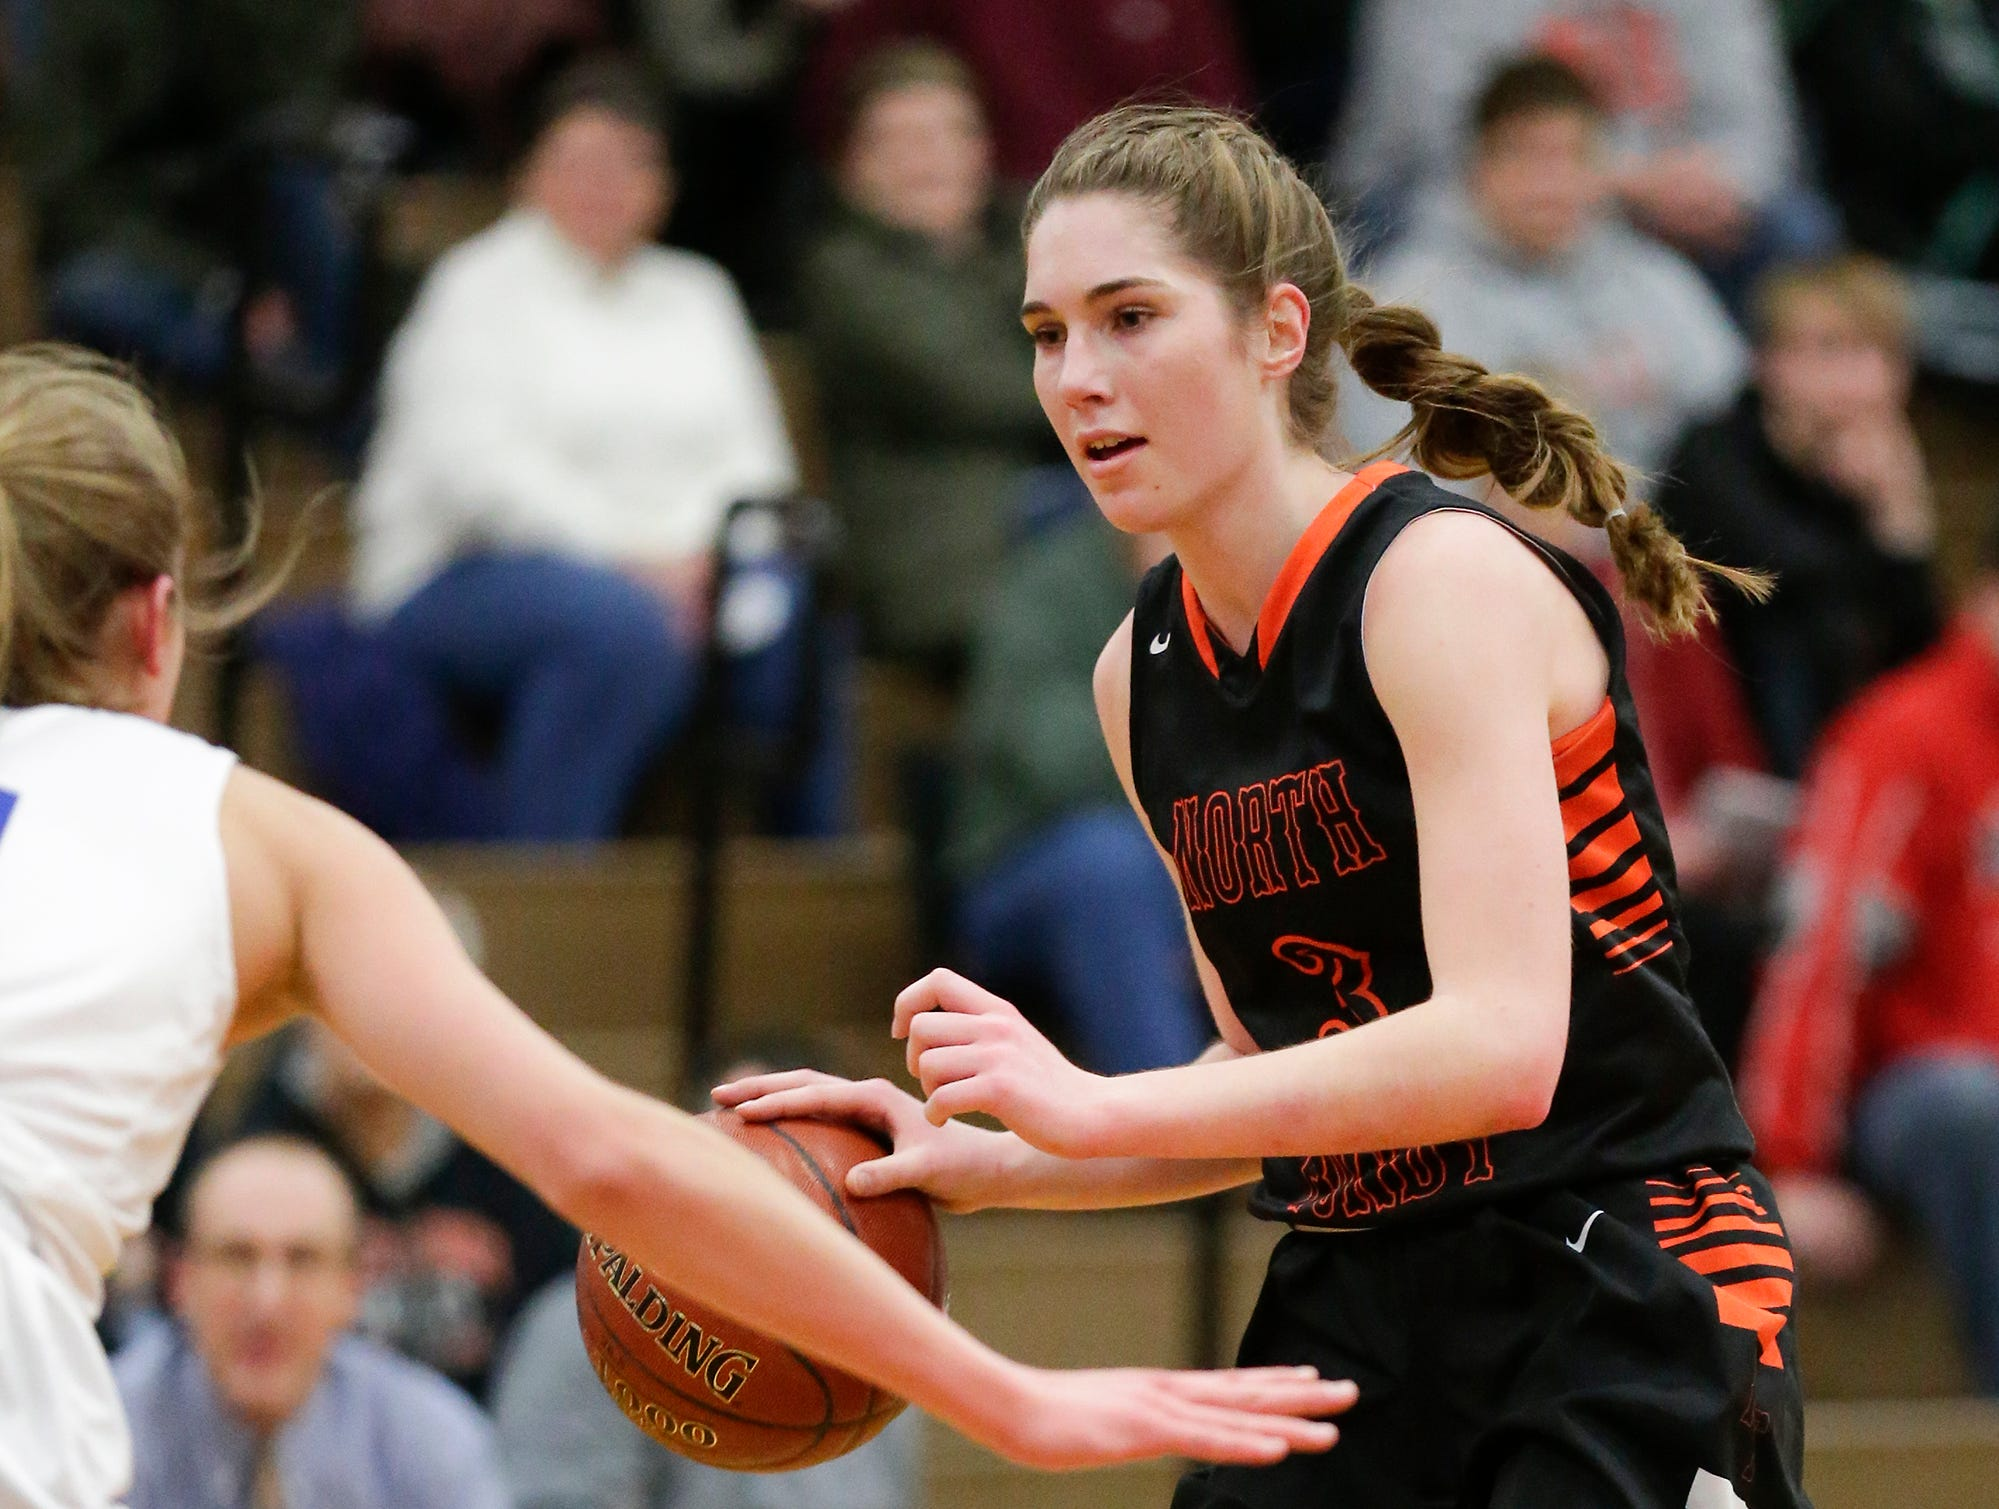 North Fond du Lac High School girls basketball's Rebecca Kingsland works her way down the court against Winnebago Lutheran Academy January 10, 2019 during their game in Fond du Lac. Doug Raflik/USA TODAY NETWORK-Wisconsin